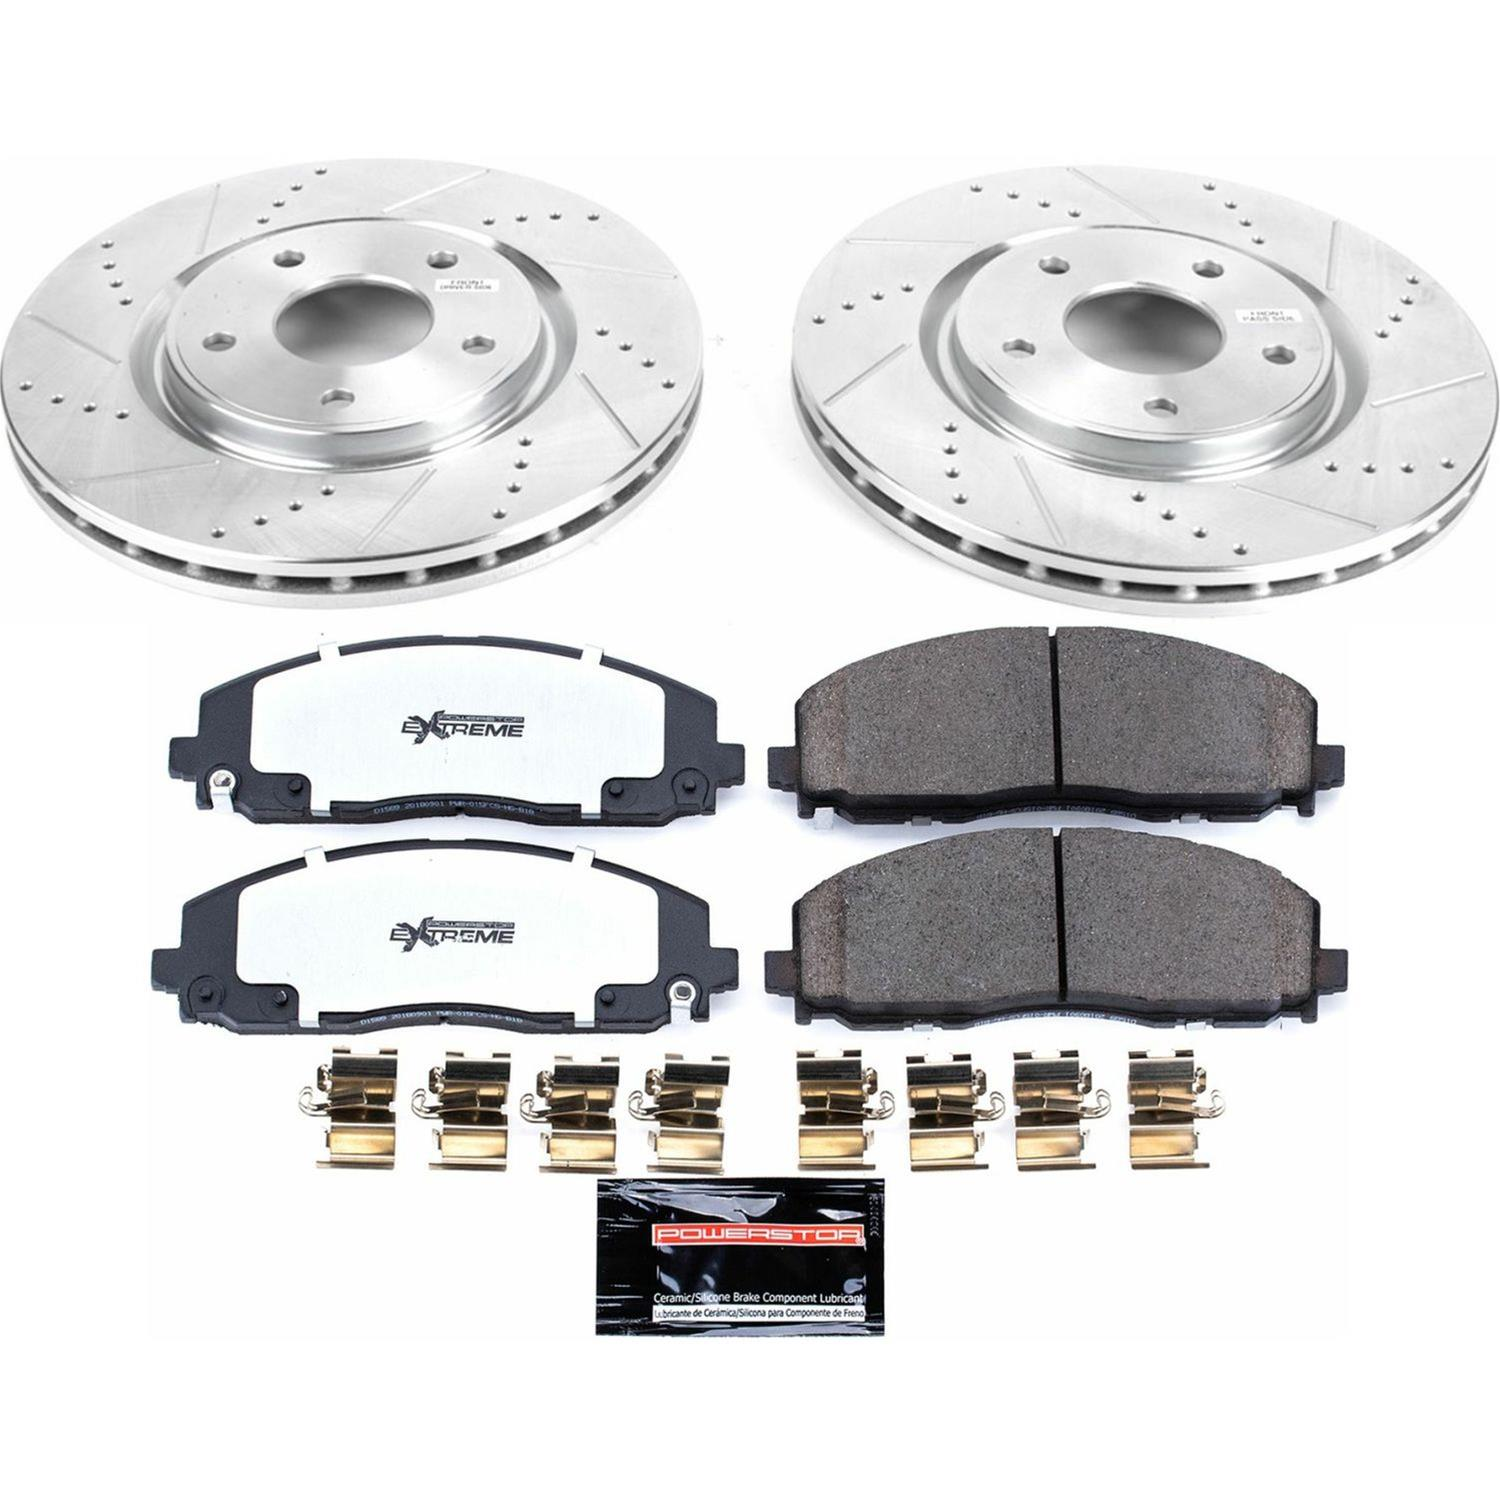 KOE5960 Power Stop Autospecialty Brake Kits